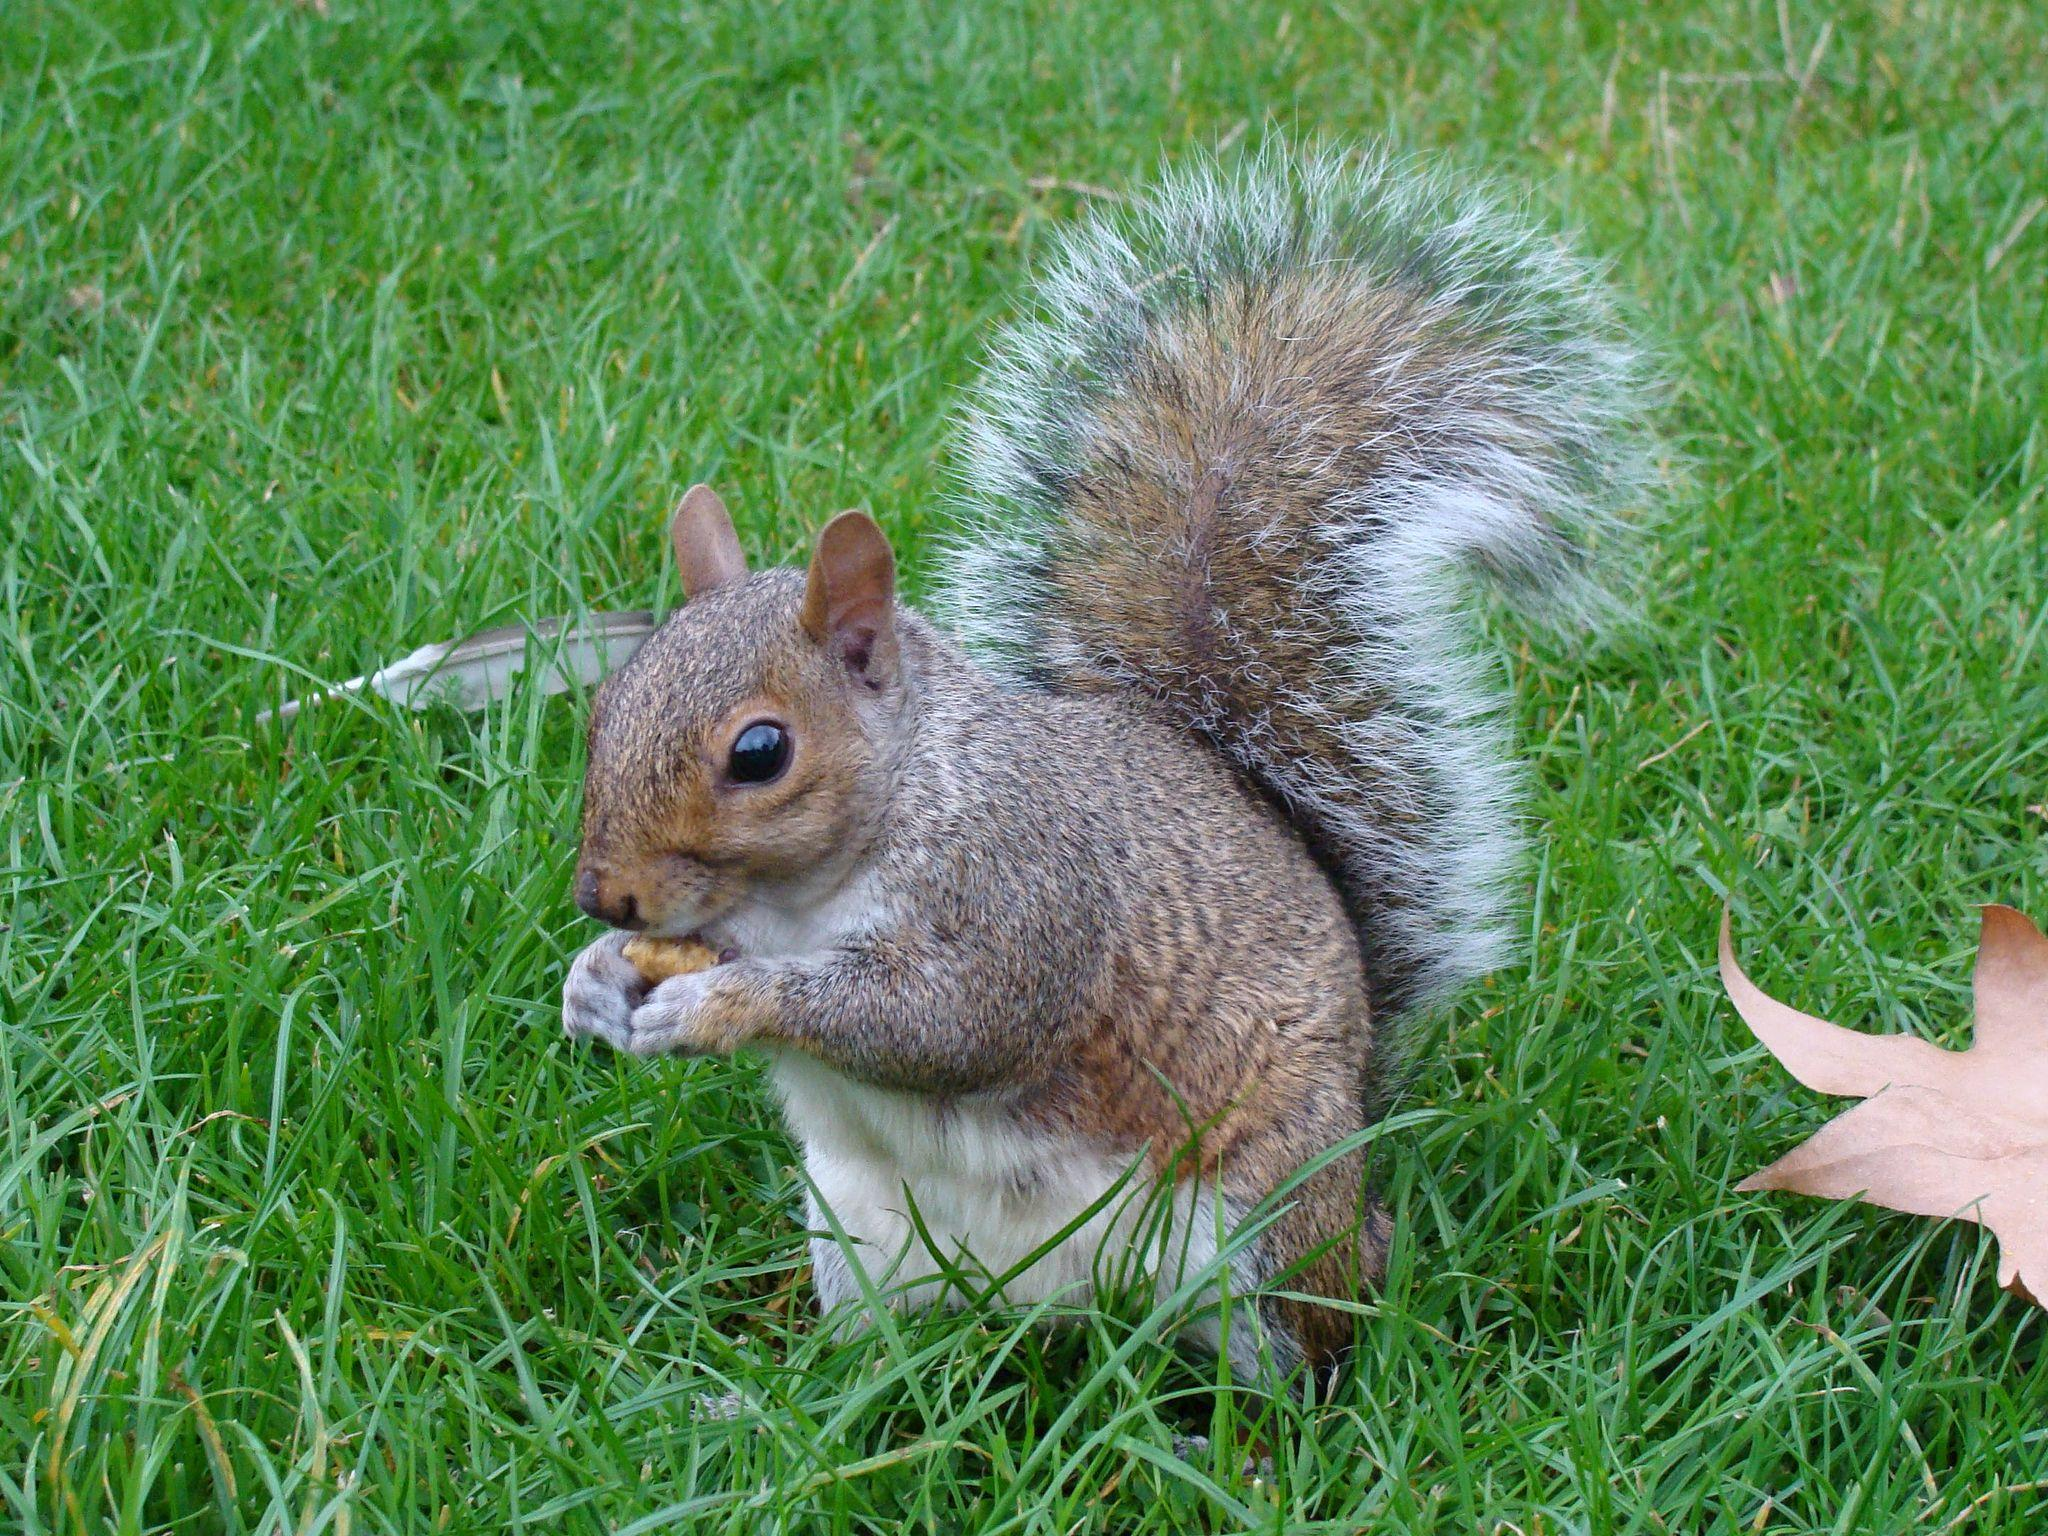 Gray squirrels are usually found in densely populated areas, like parks and campuses, according to Project Squirrel. (Drow male / Wikimedia Commons)